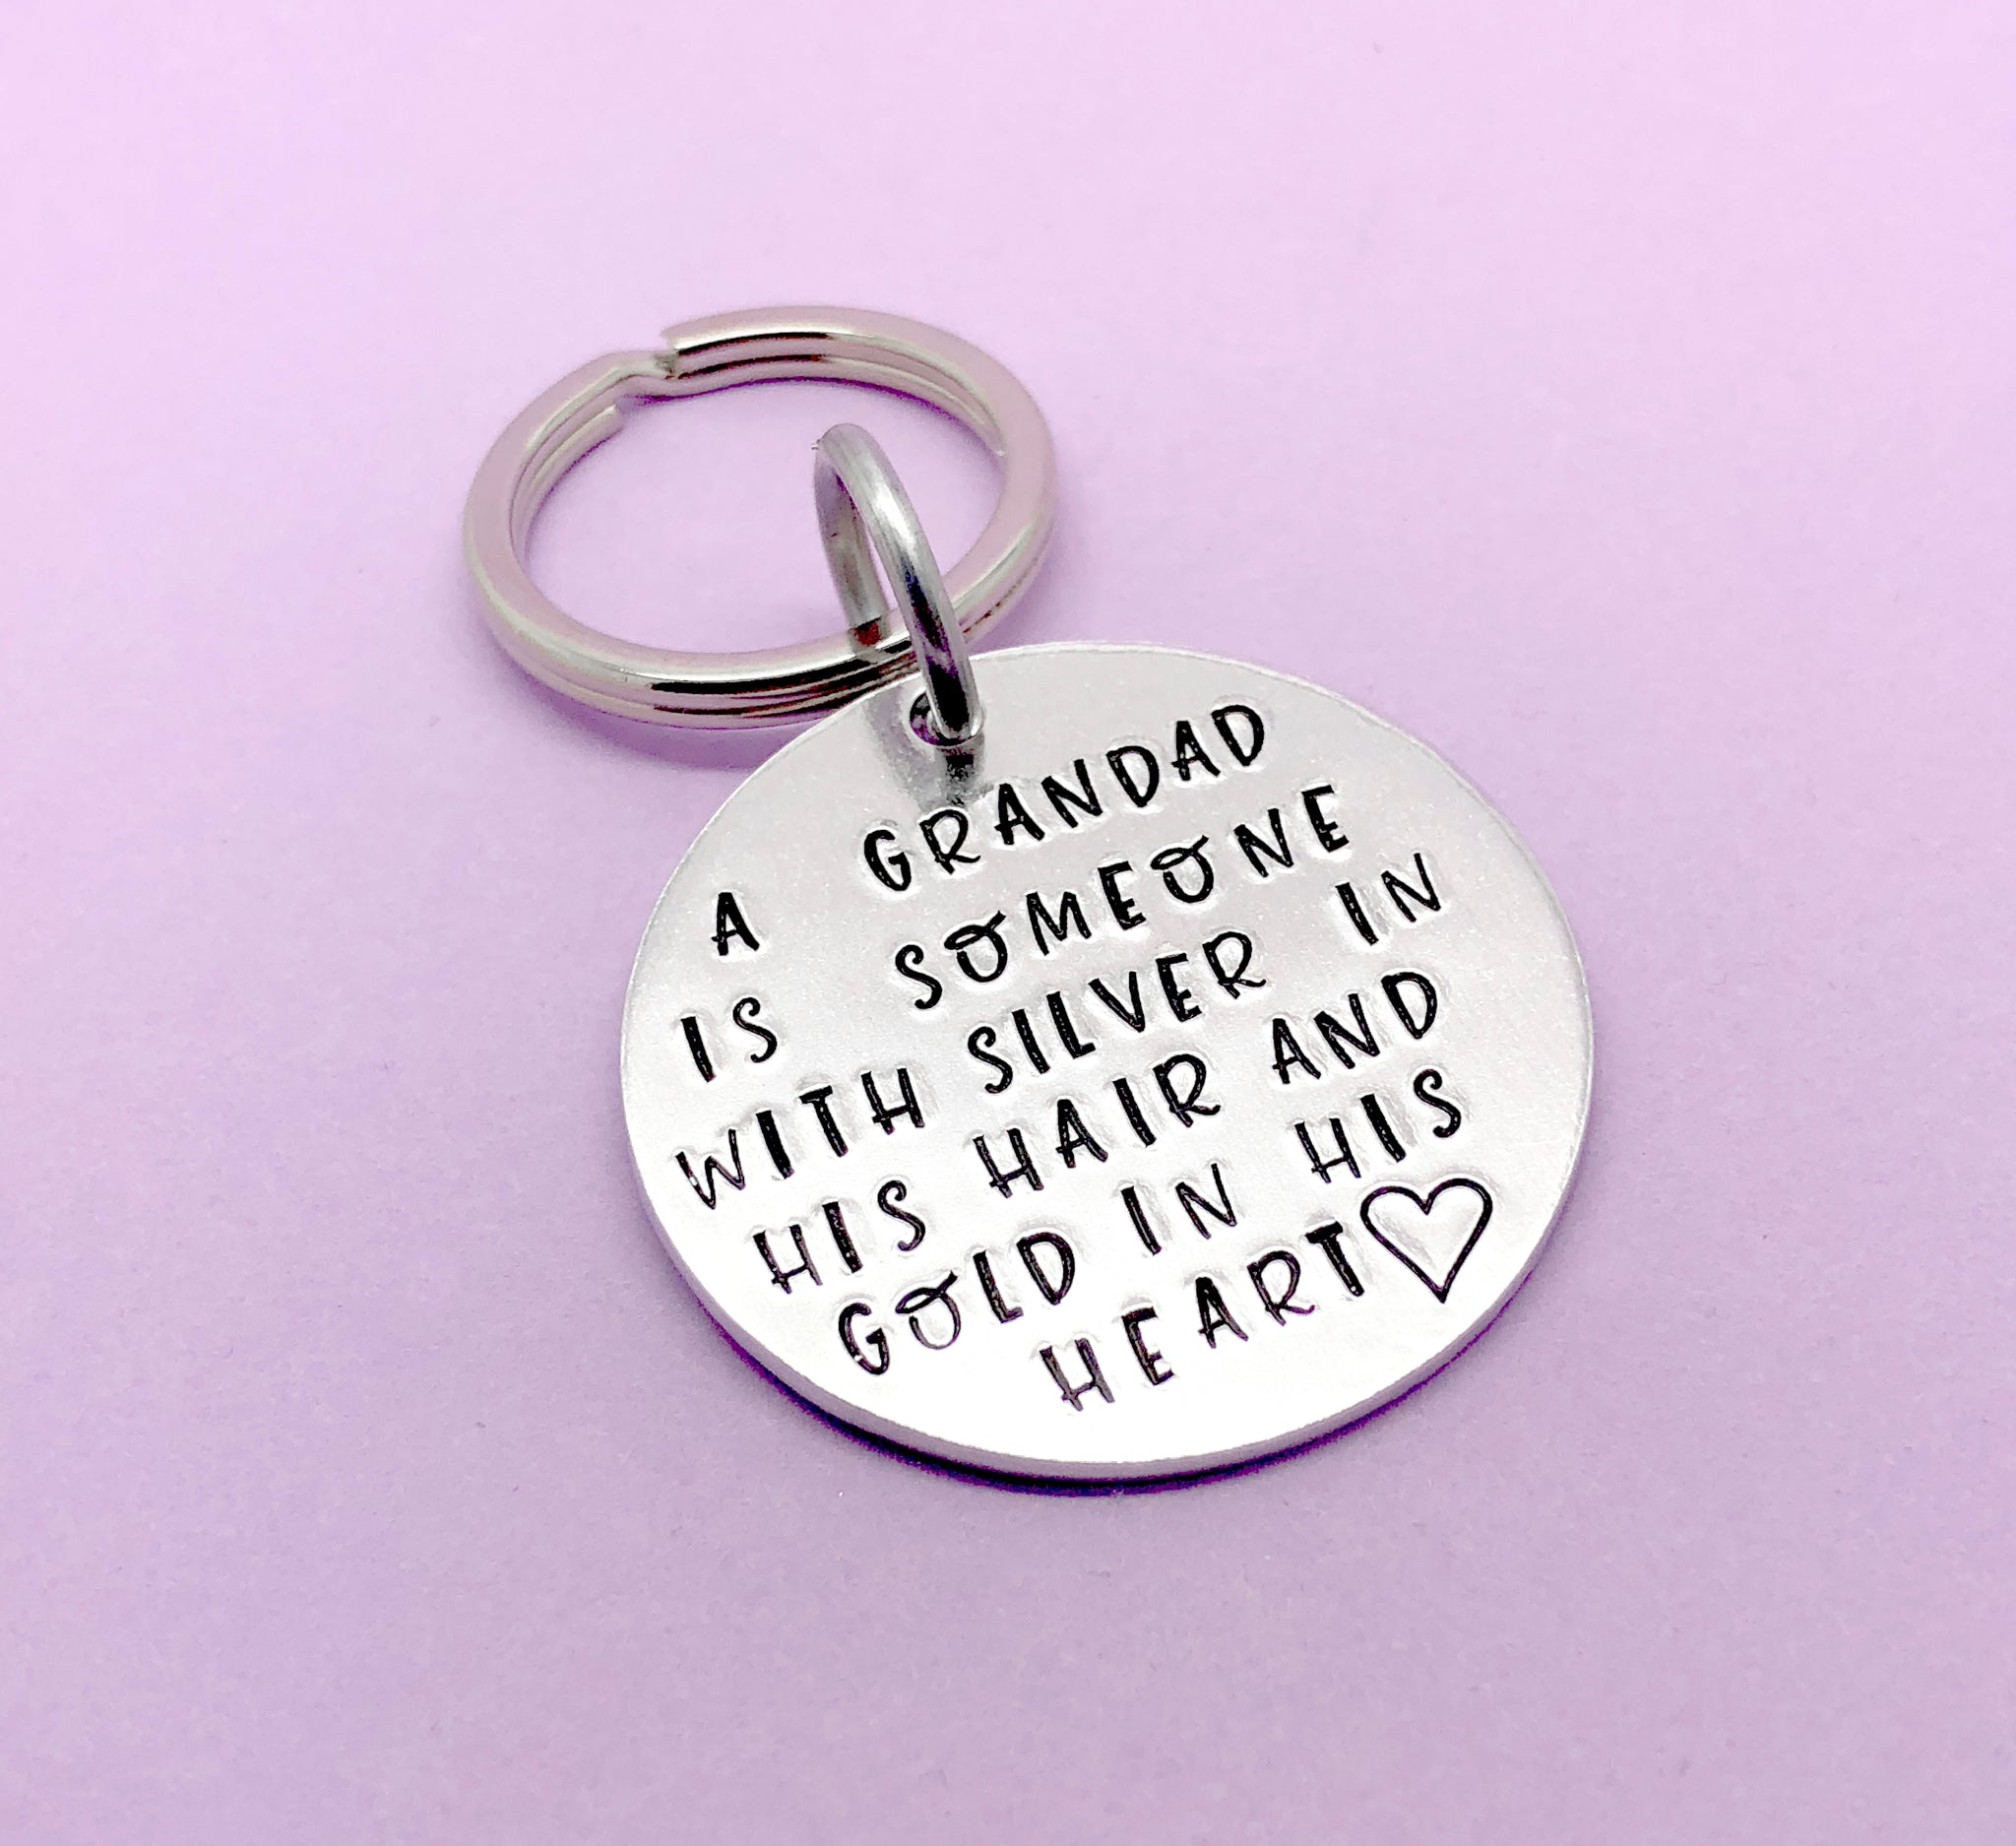 A Grandad is someone with silver in their hair and gold in his heart keyring